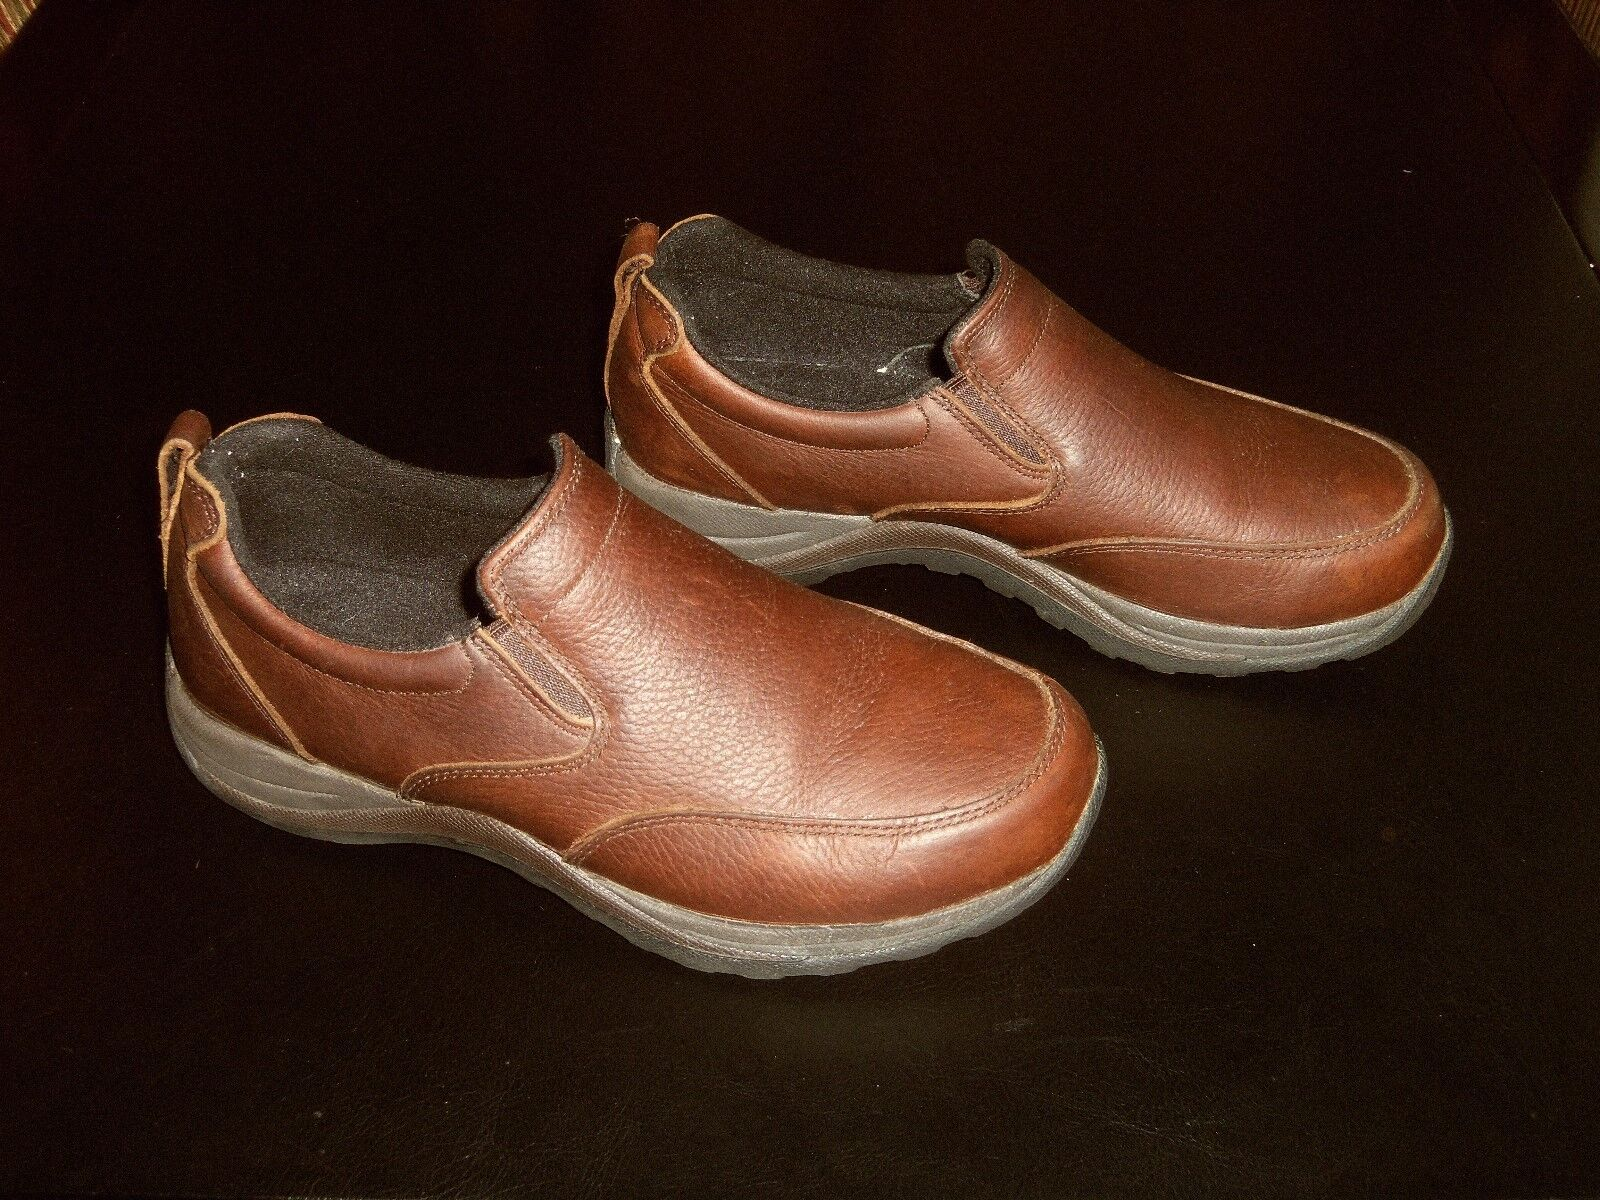 LL Bean 257064 Brown Leather Slip On shoes Men's Size 7.5 EUC